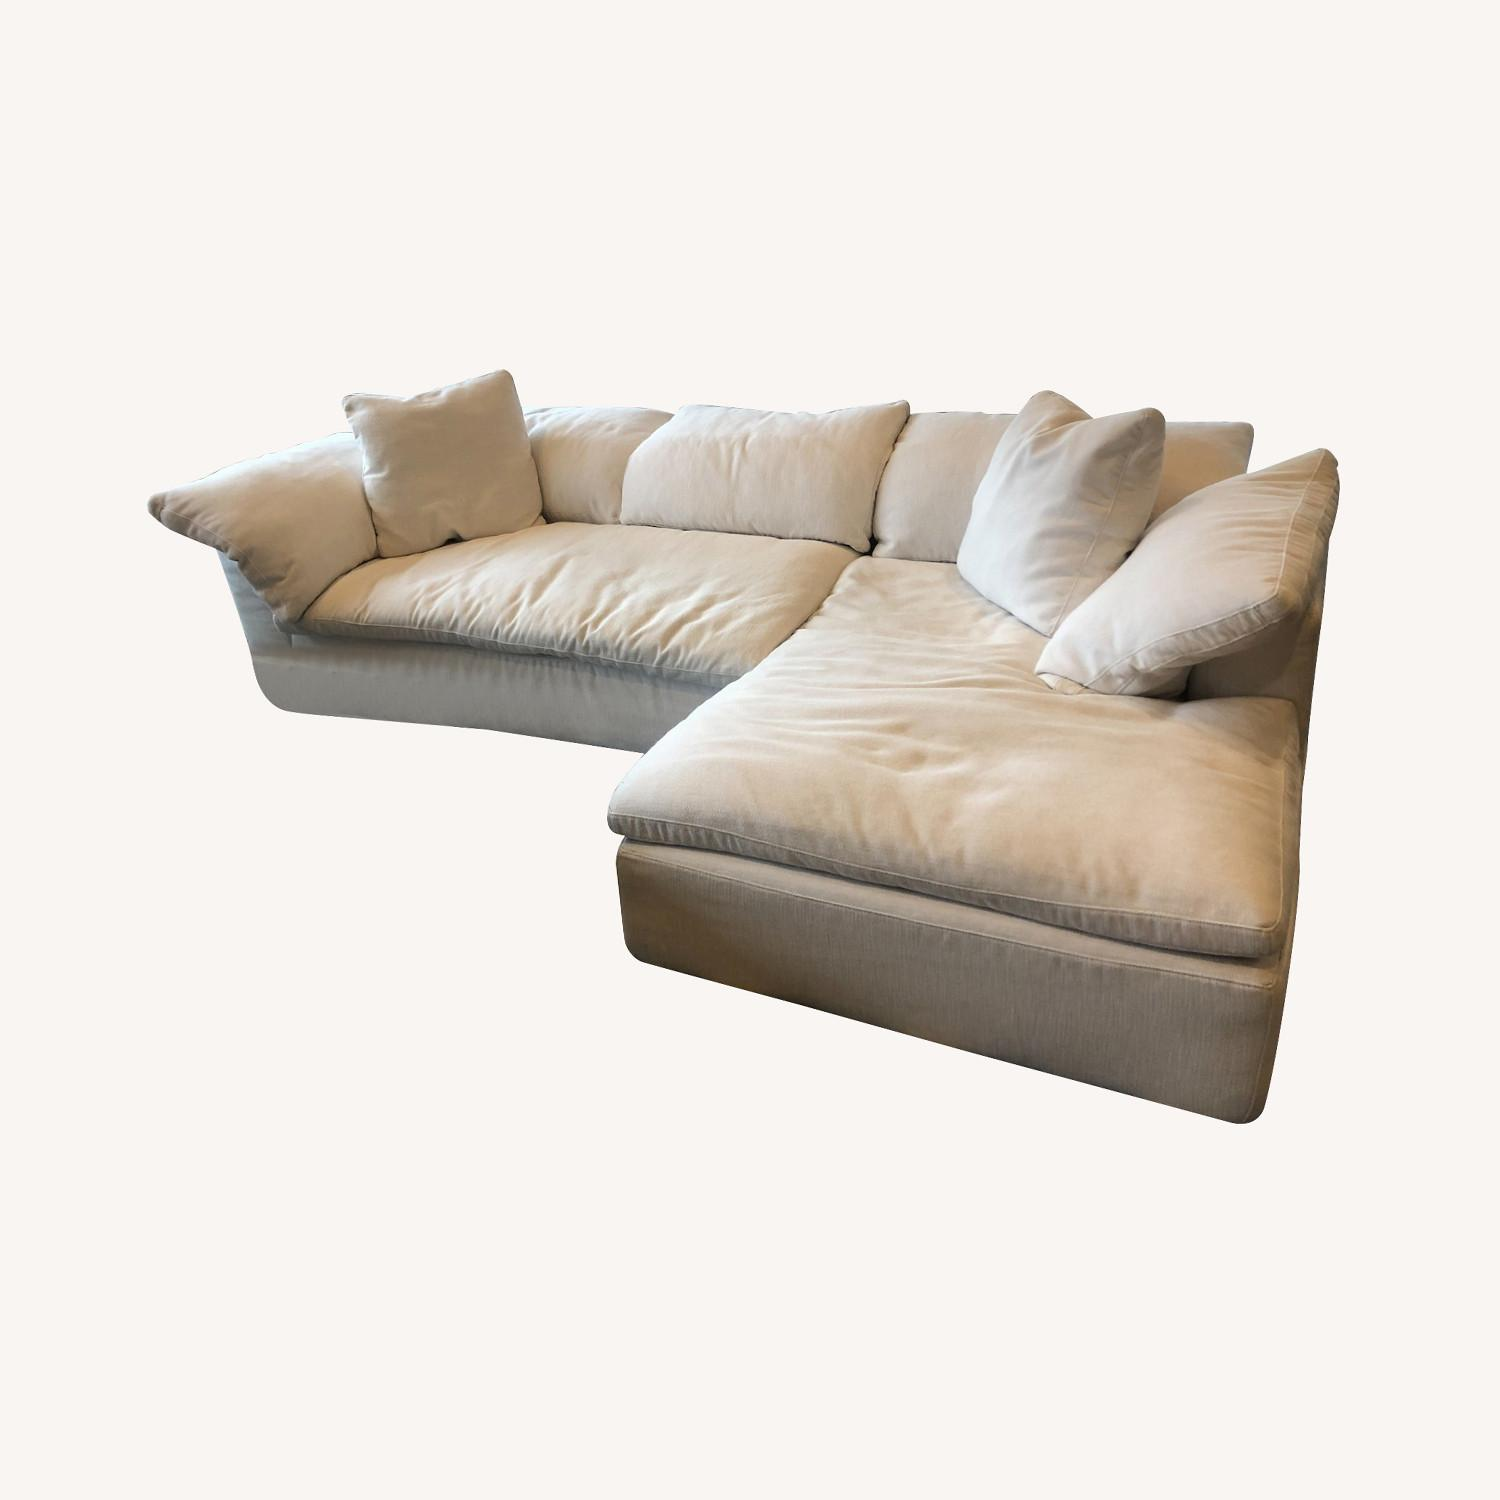 Restoration Hardware Cloud Collection Sectional - image-0